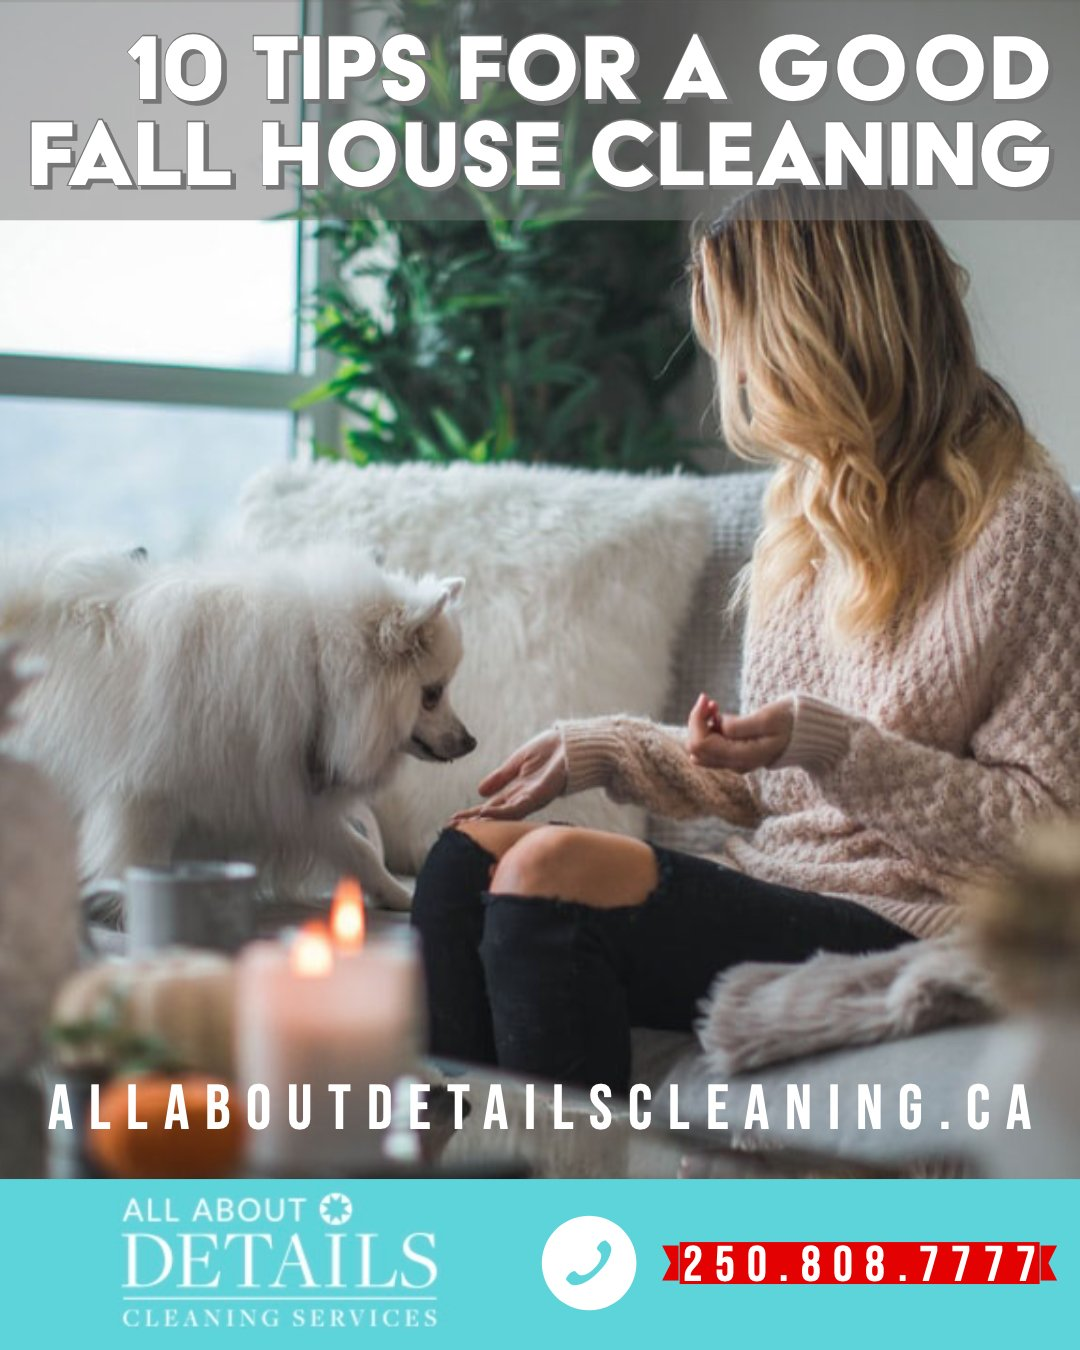 10 Tips For A Good Fall House Cleaning